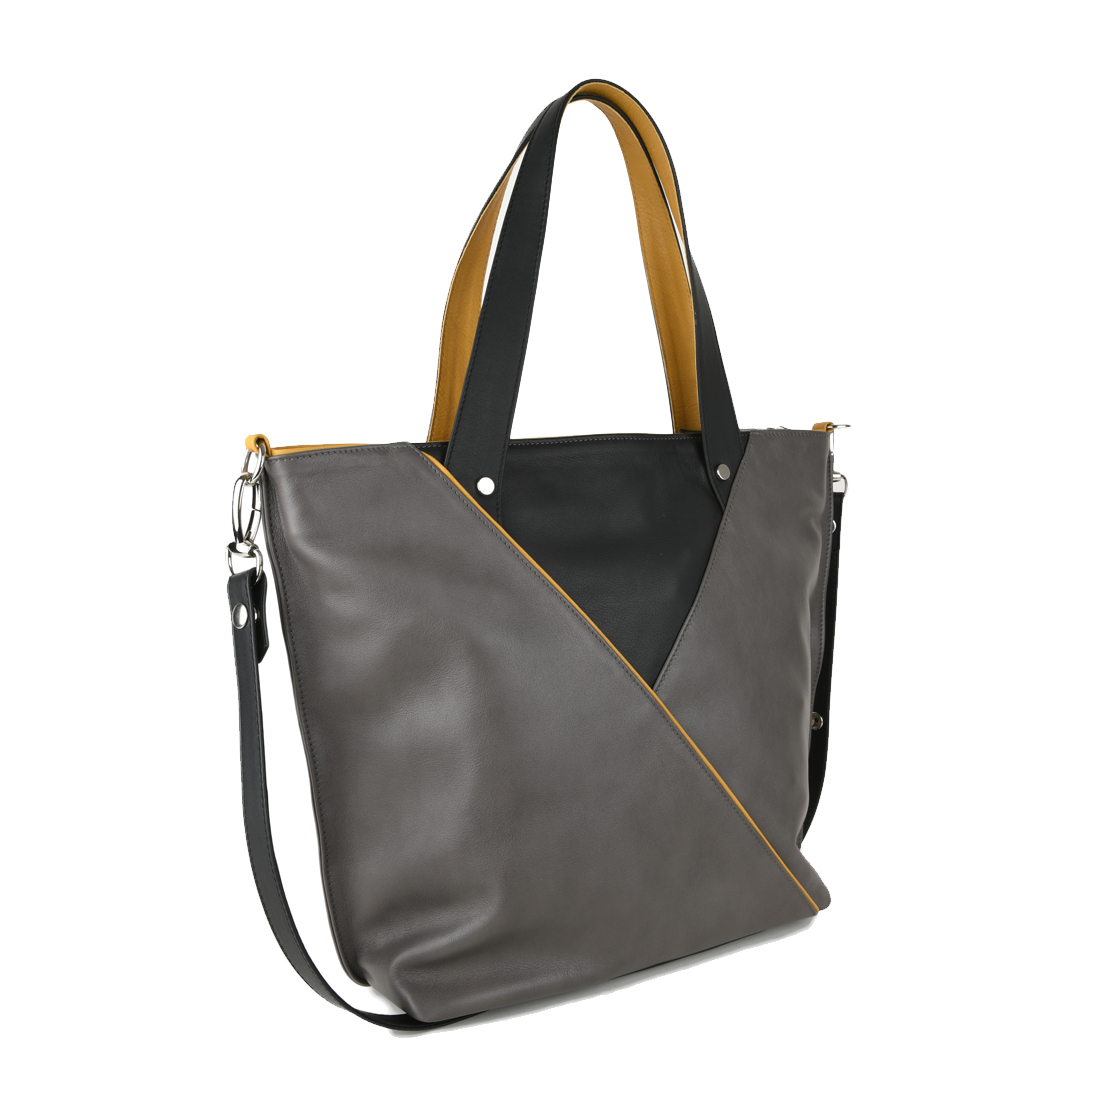 Amanda Leather Tote Bag in Grigio